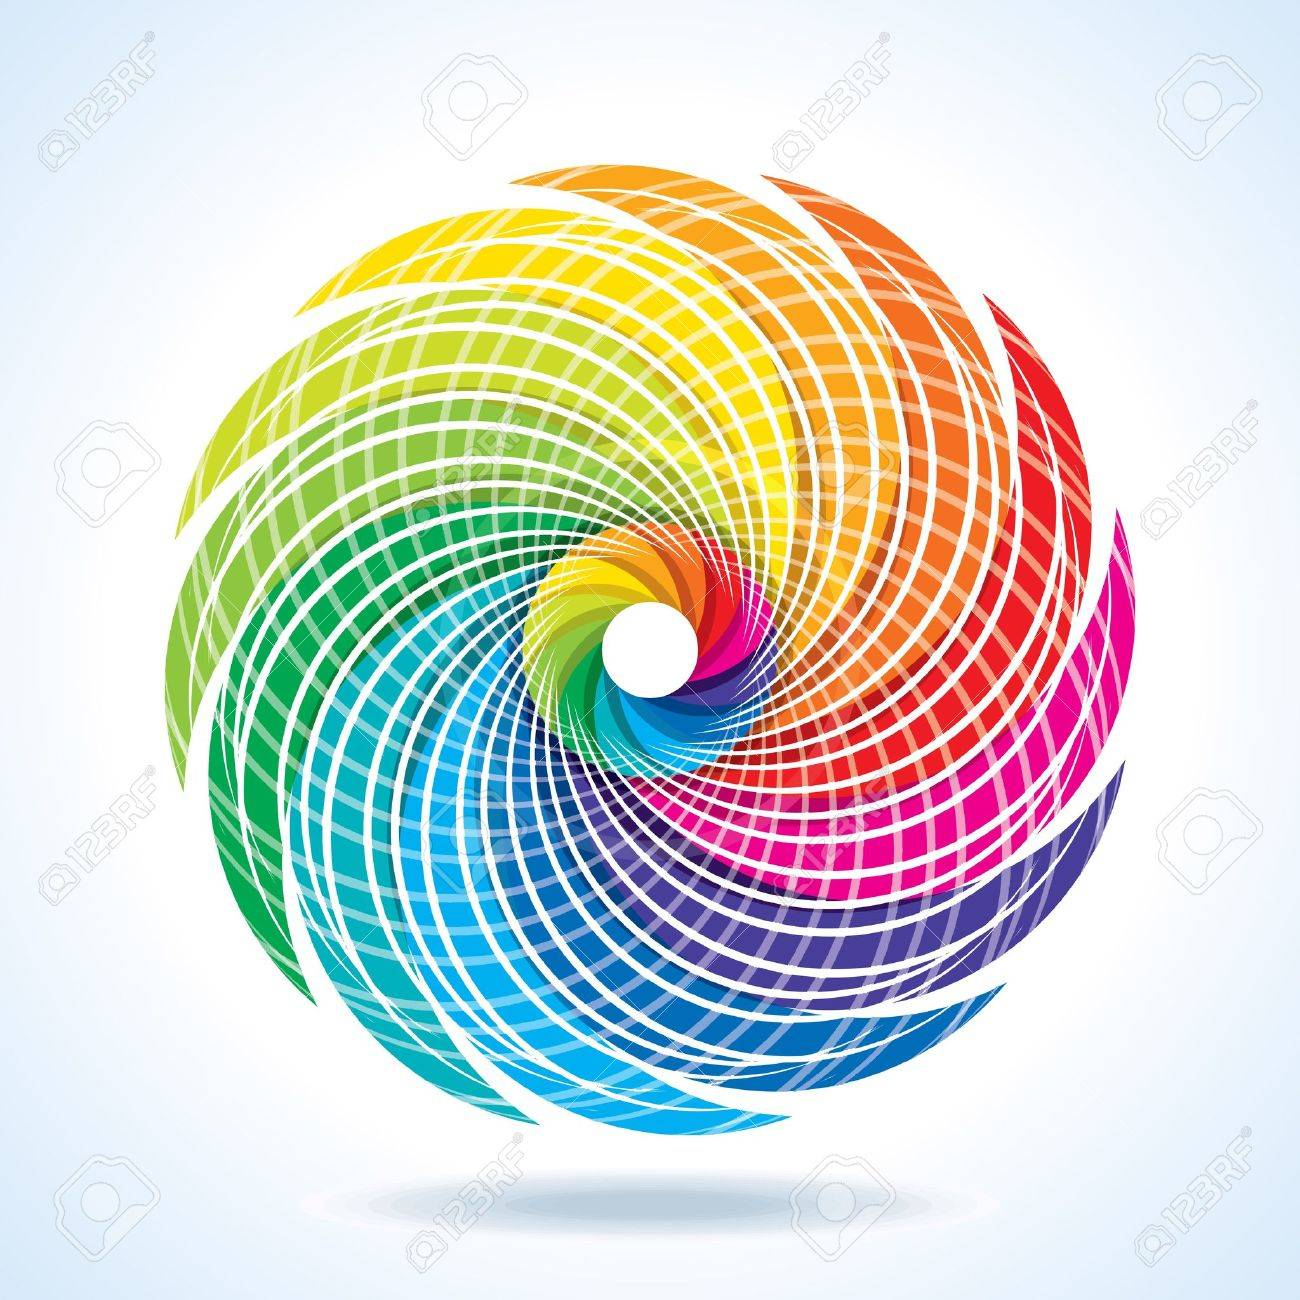 abstract colorful design Stock Vector - 19466782